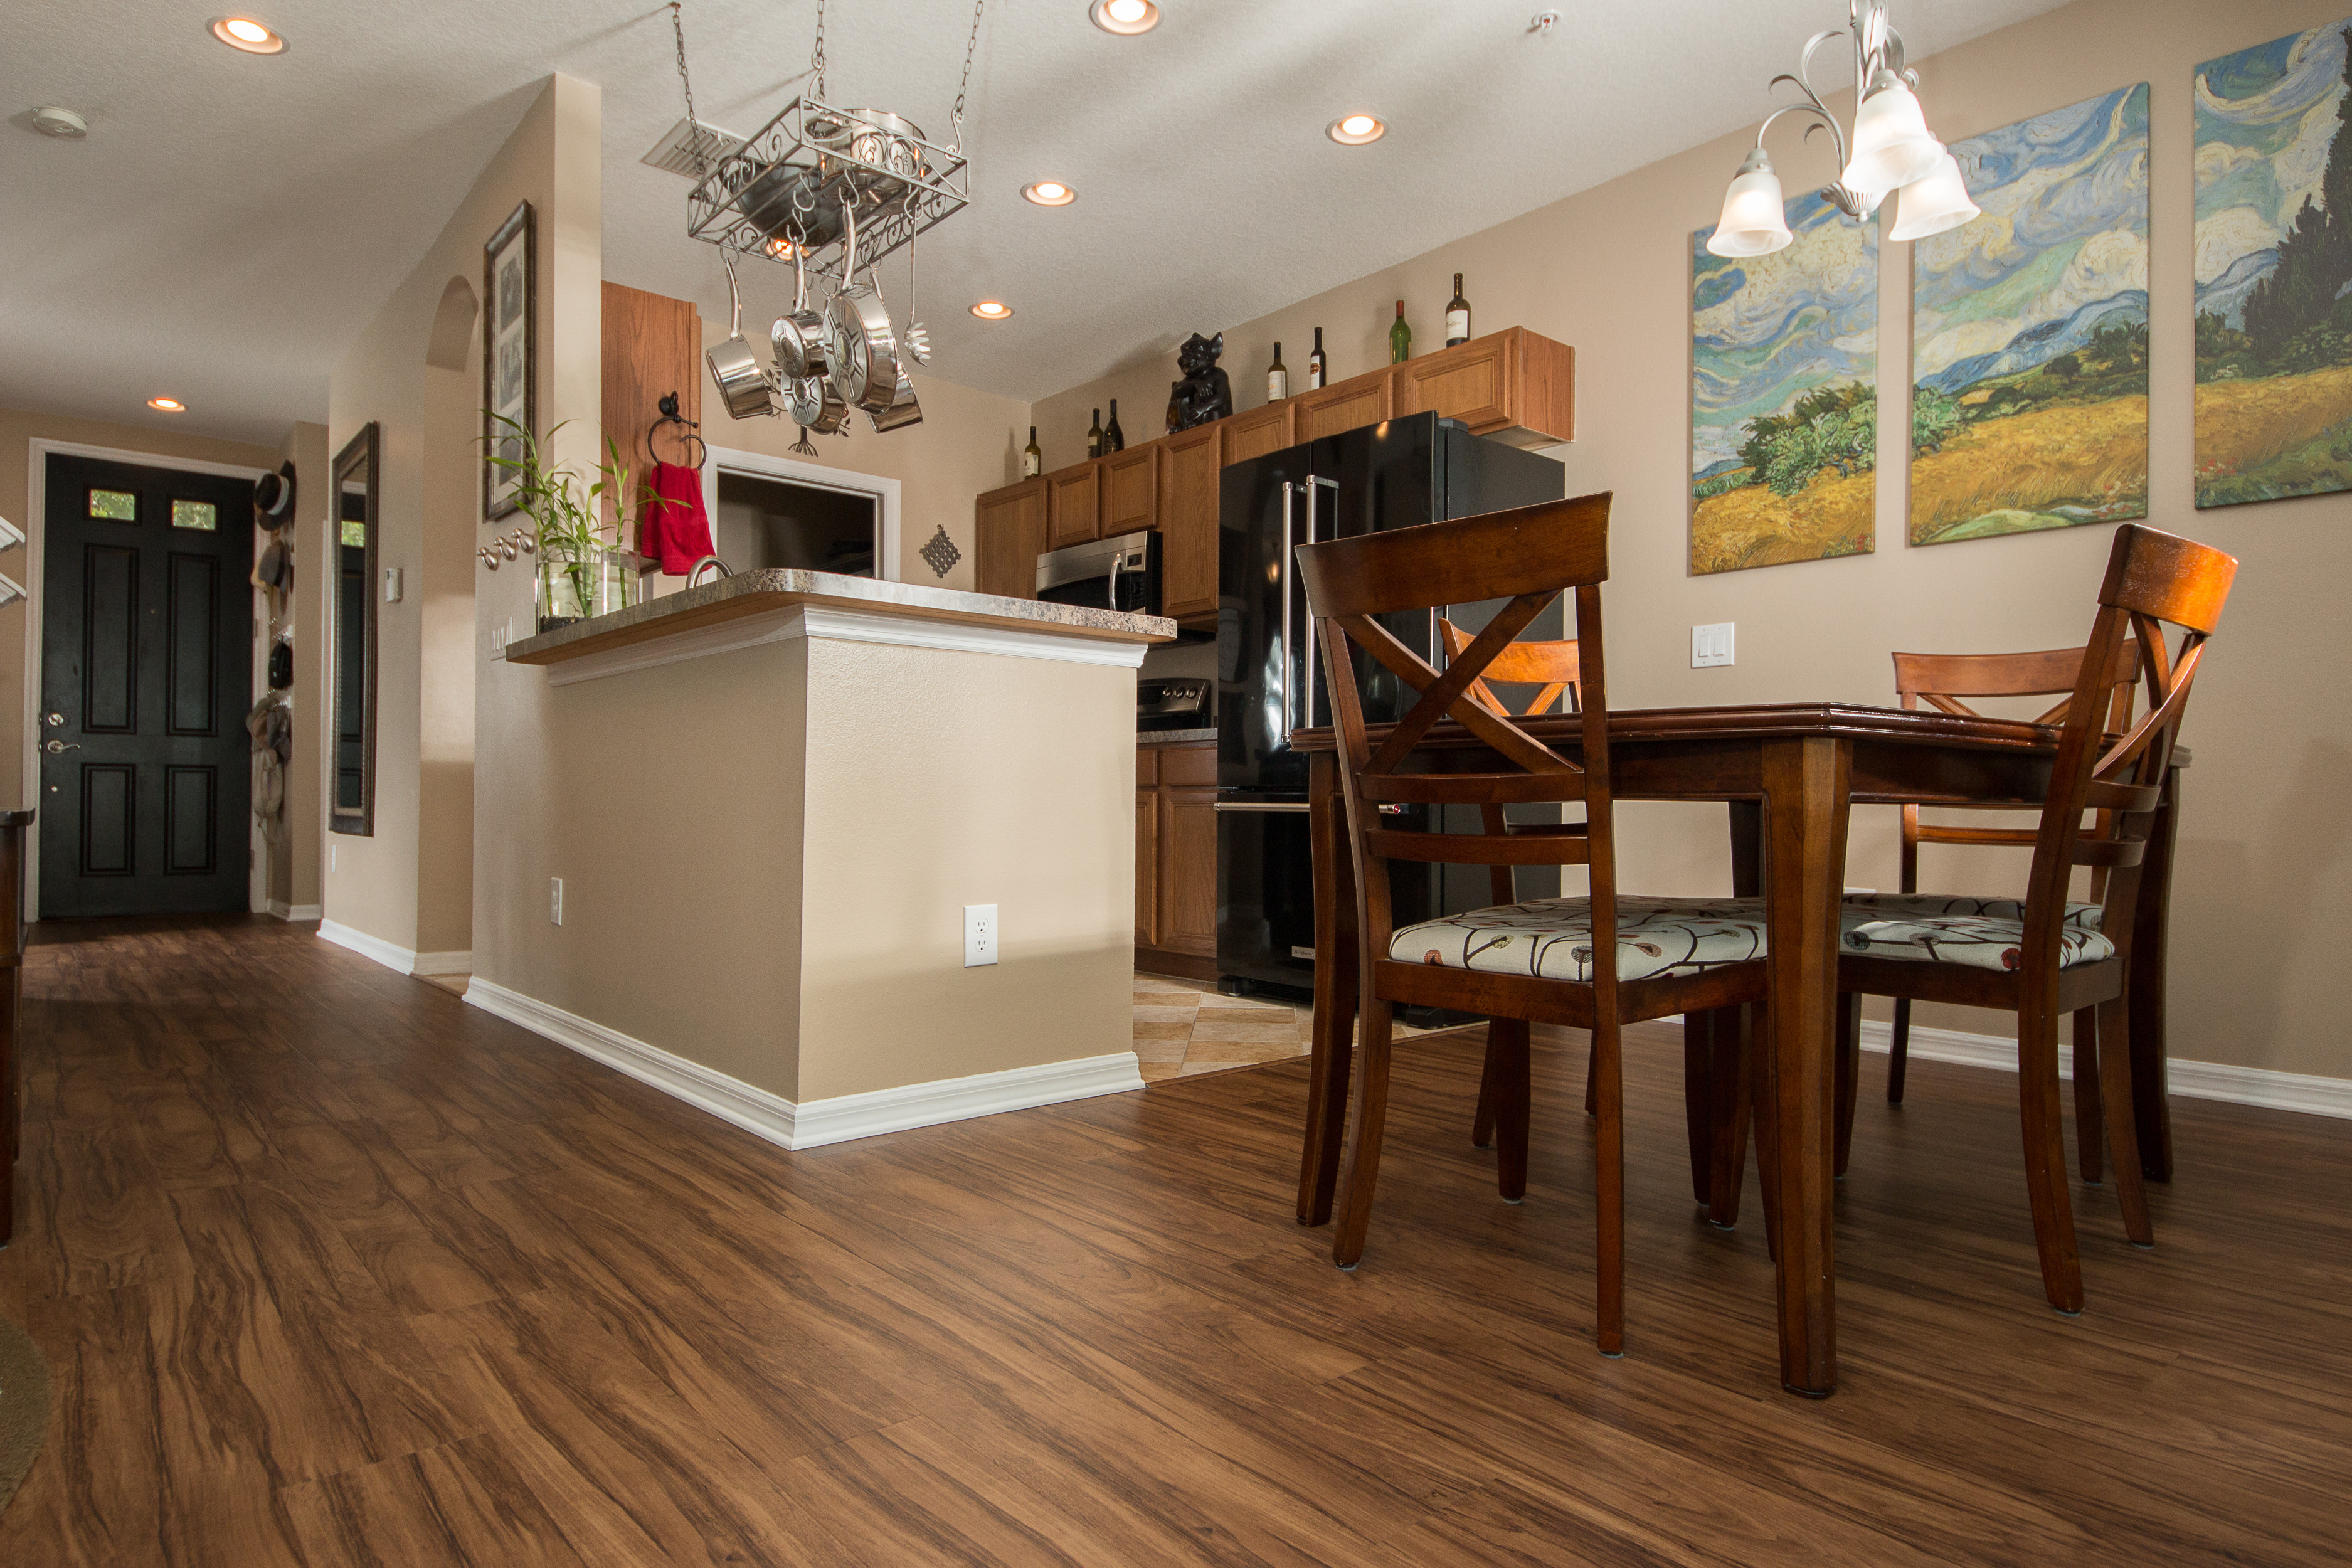 walnut hardwood flooring durability of wood flooring can add value to a property ability wood flooring for view larger image